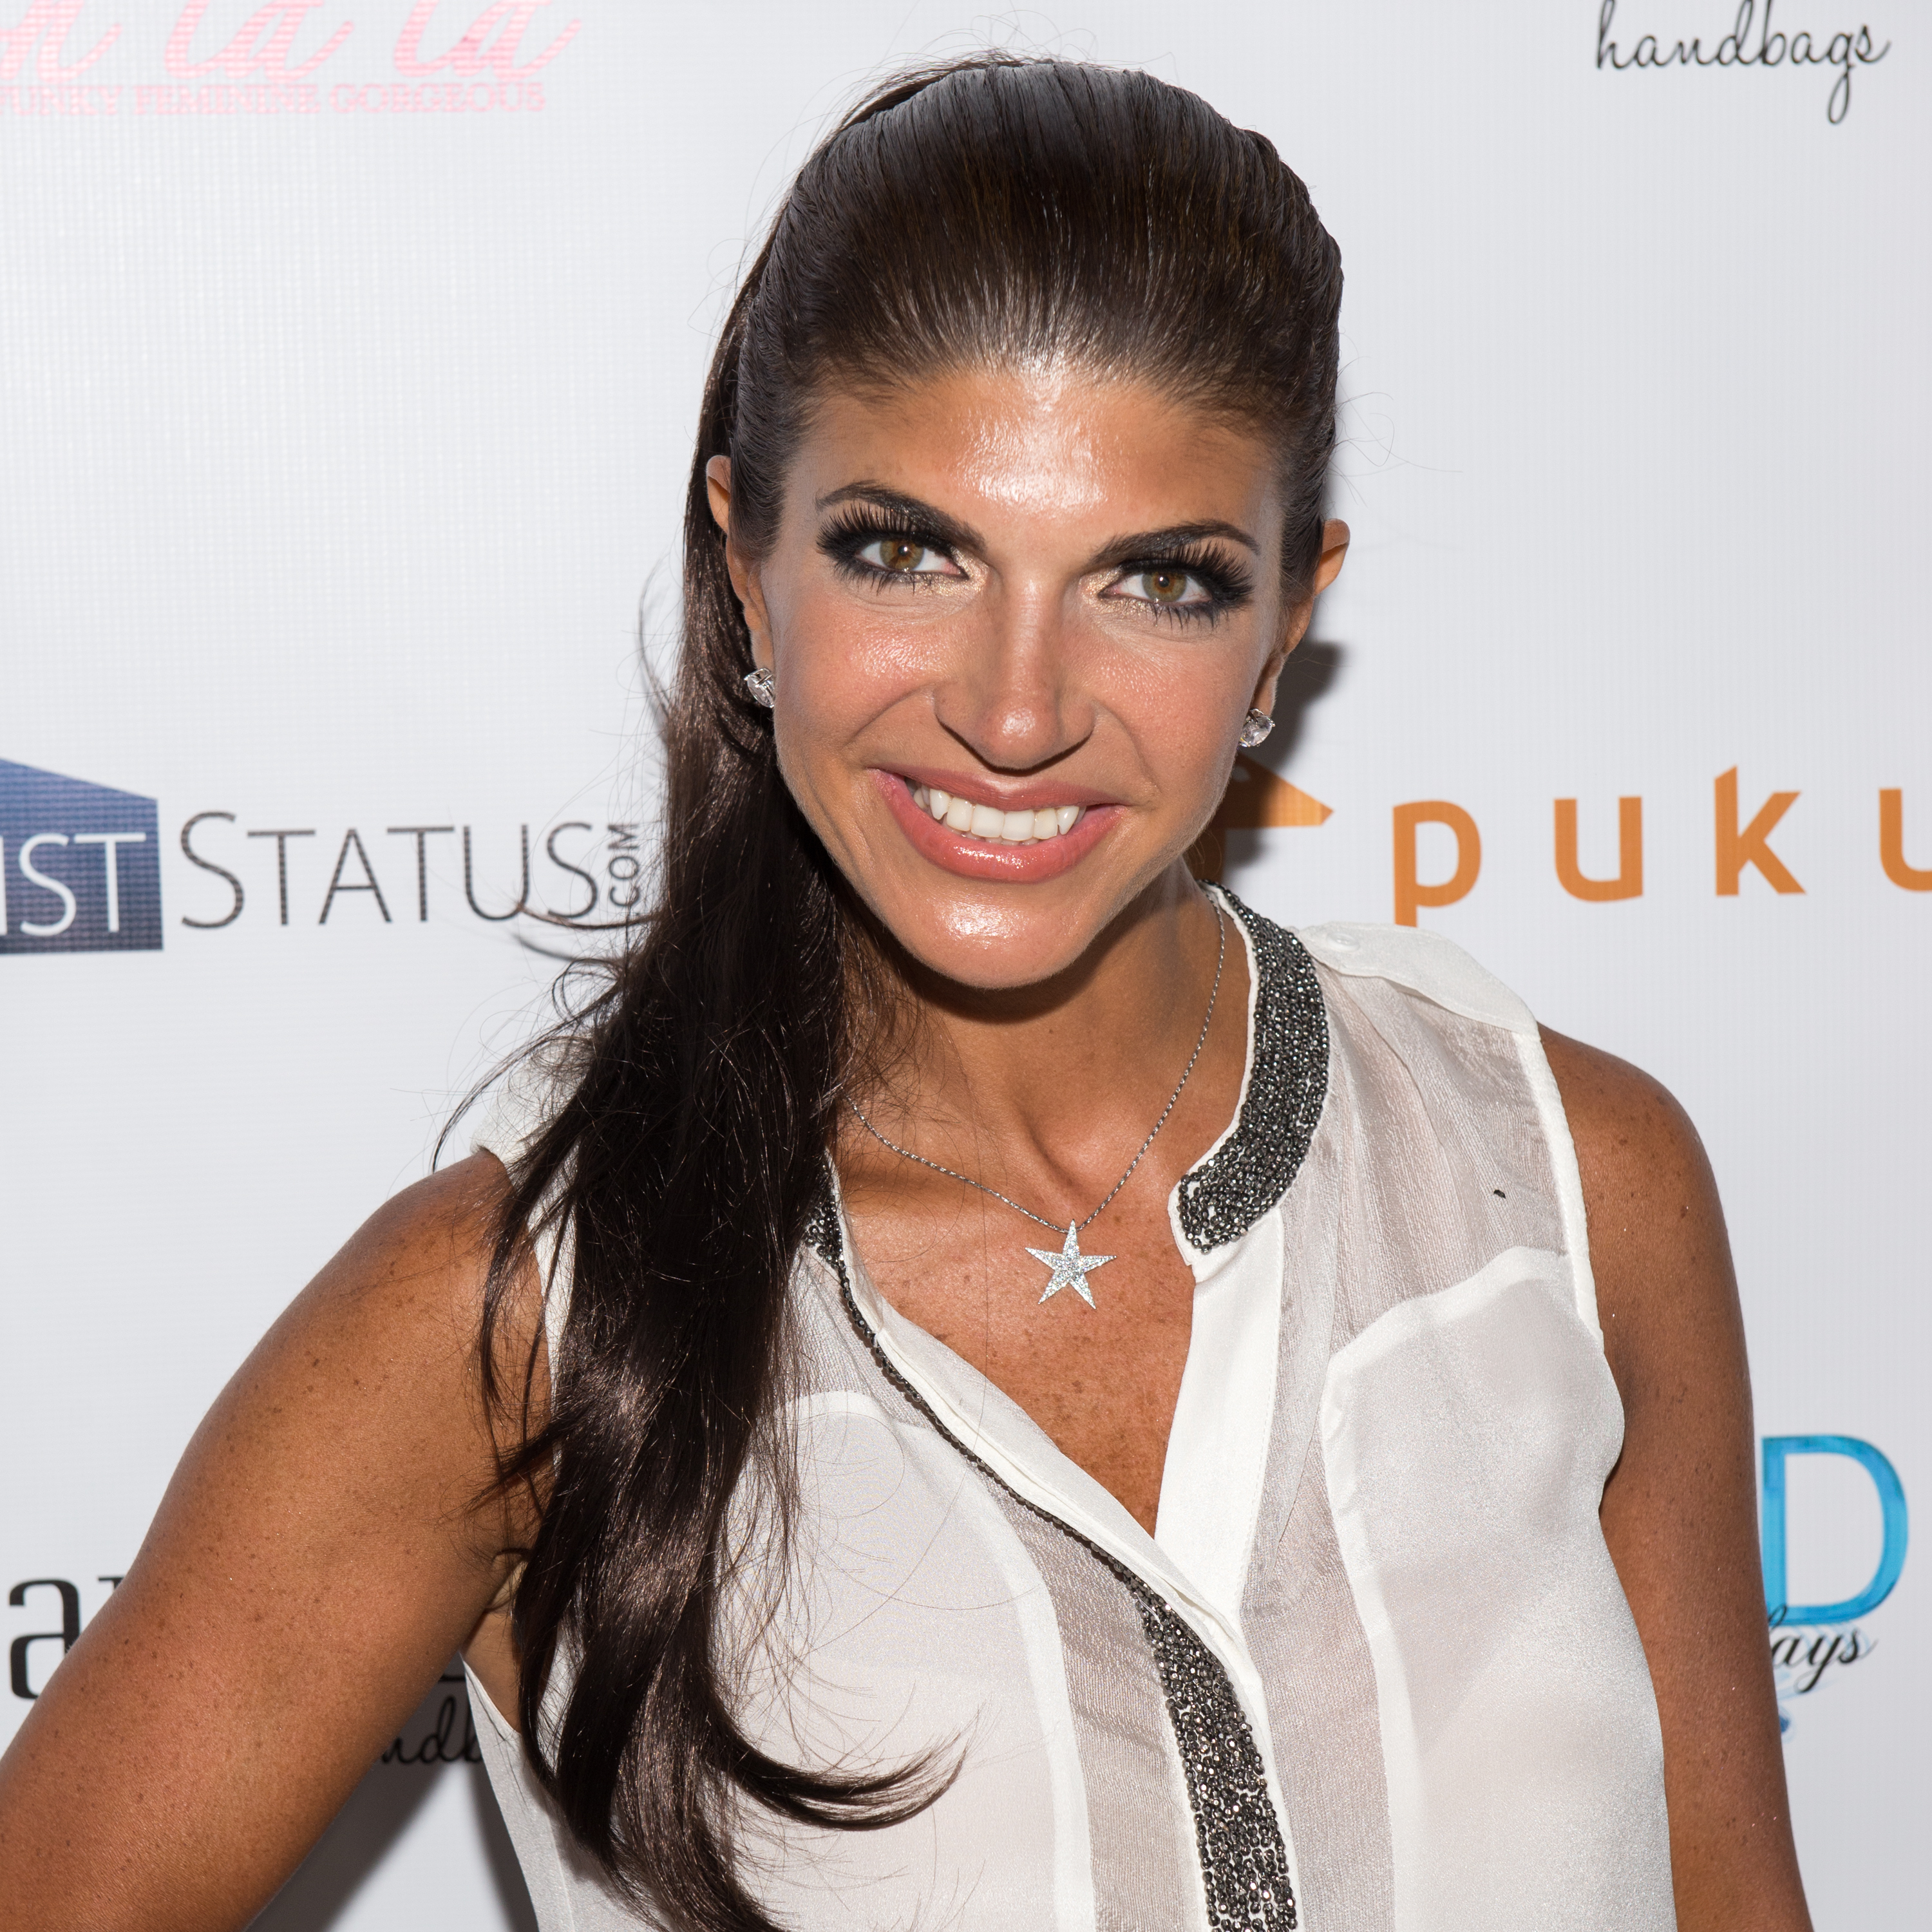 Tevevision Personality Teresa Giudice attends the White Party hosted by Dina Manzo and Teresa Giudice at Woodbury Country Club on July 21, 2014 in Woodbury, New York.